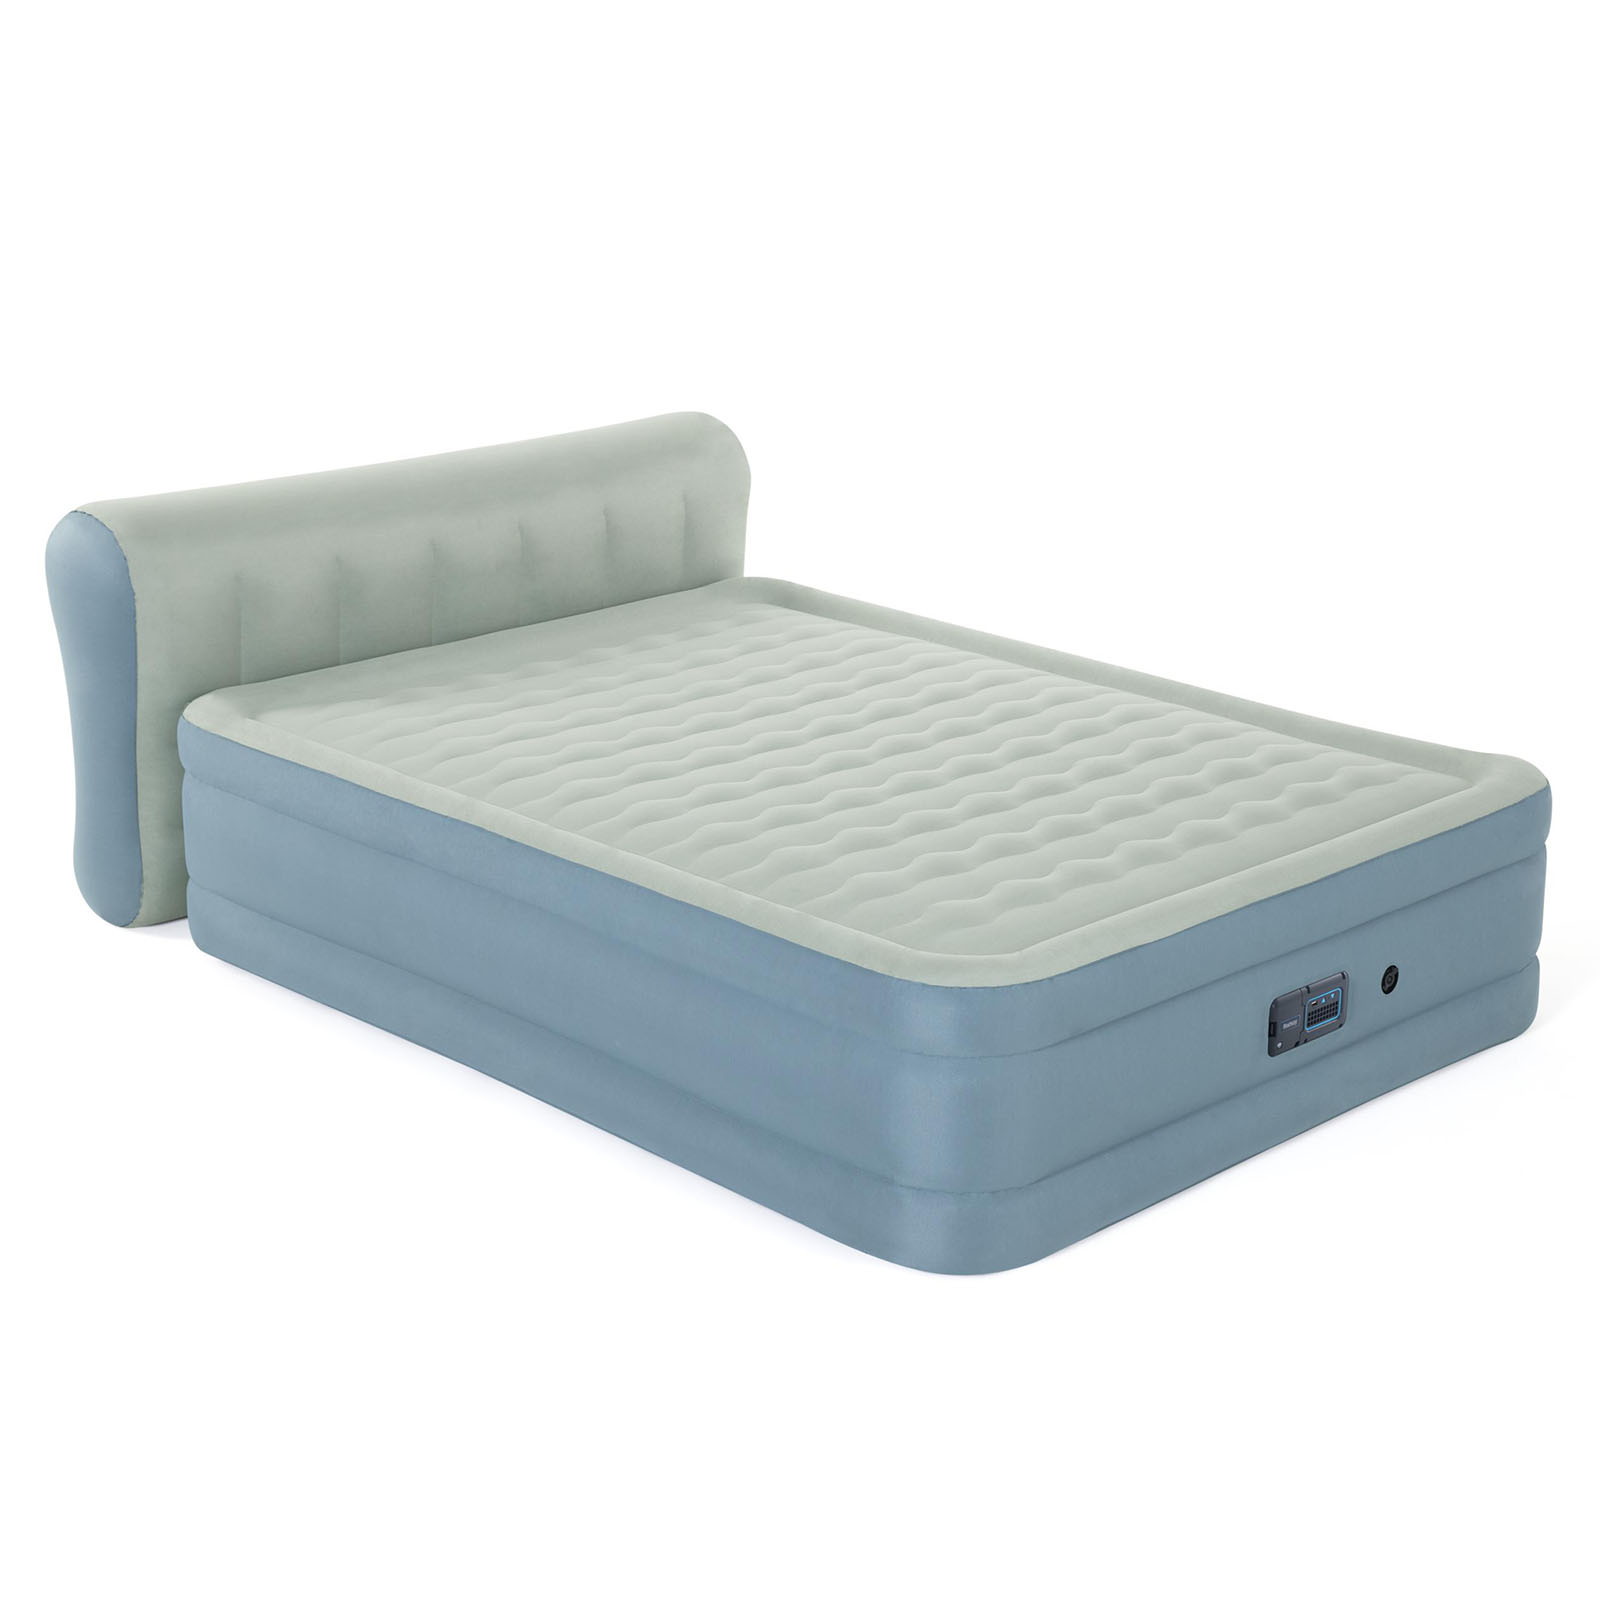 Bestway Air Bed Beds Queen Mattress Airbed Inflatable Fortech Mat Built-in Pump